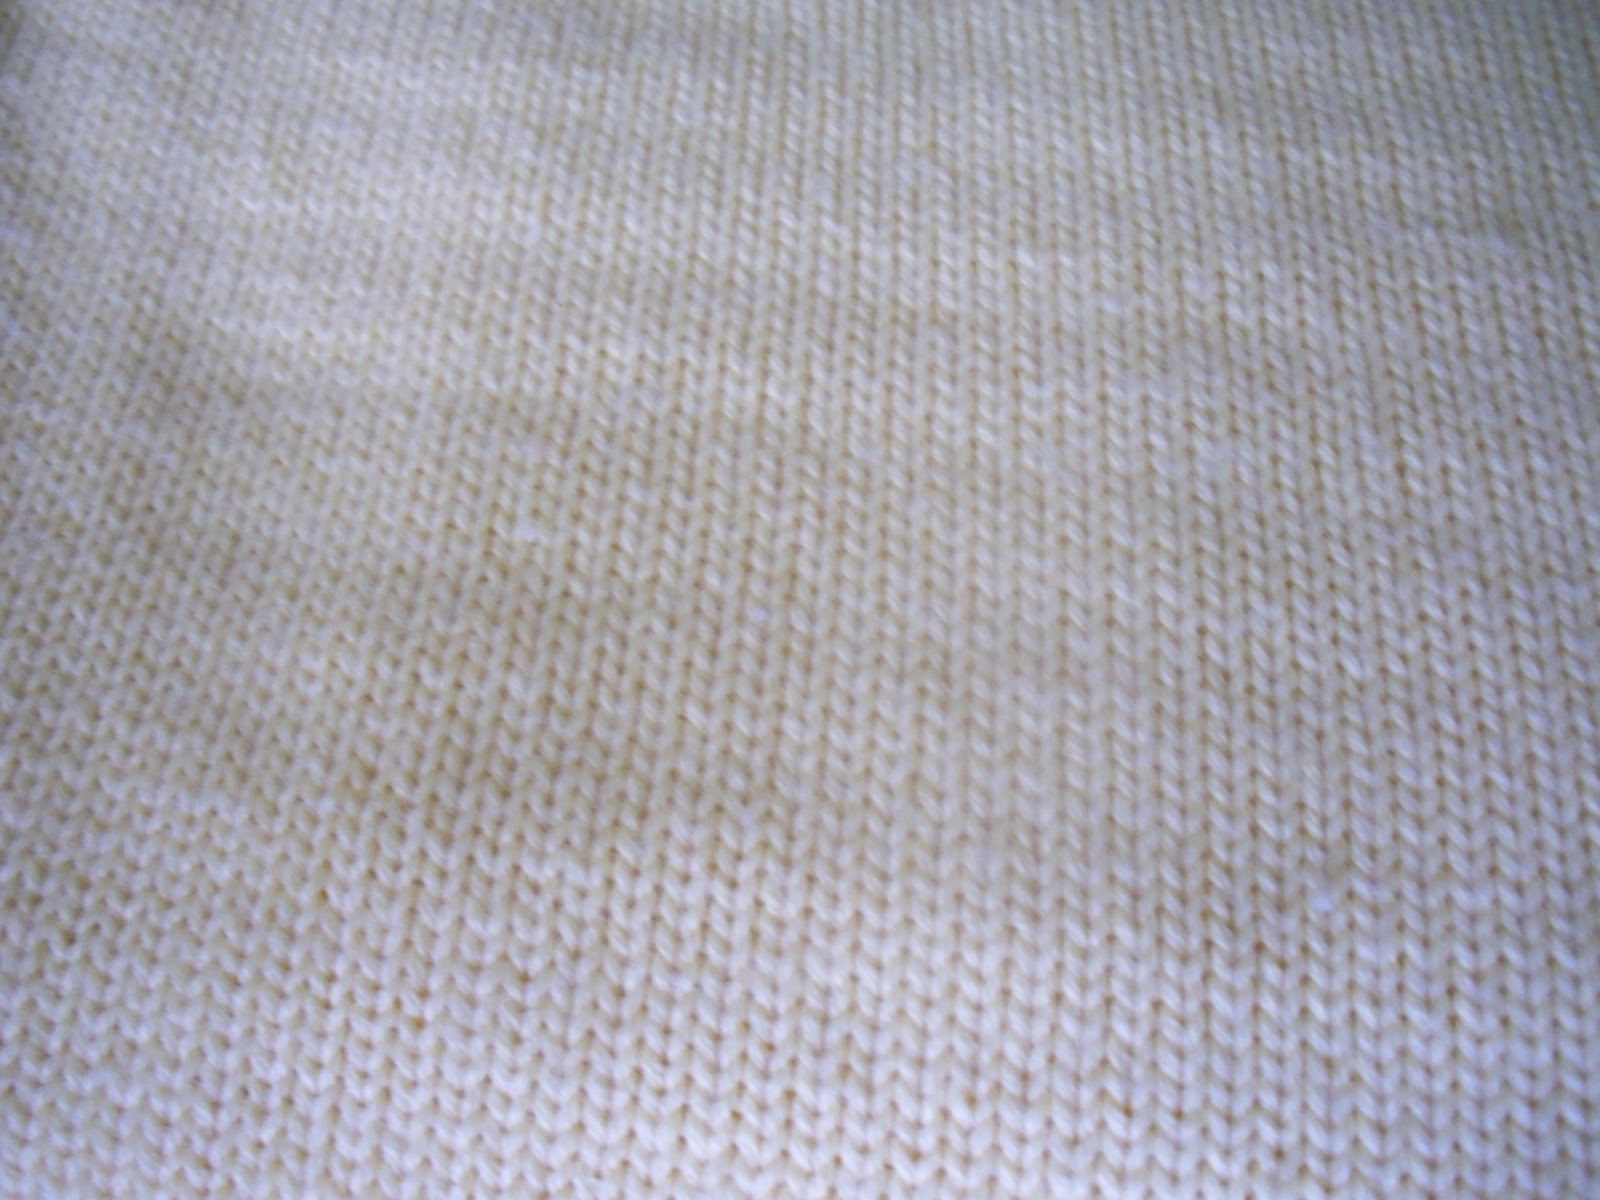 Knit Material : Knitted Fabric (stockinette stitch)